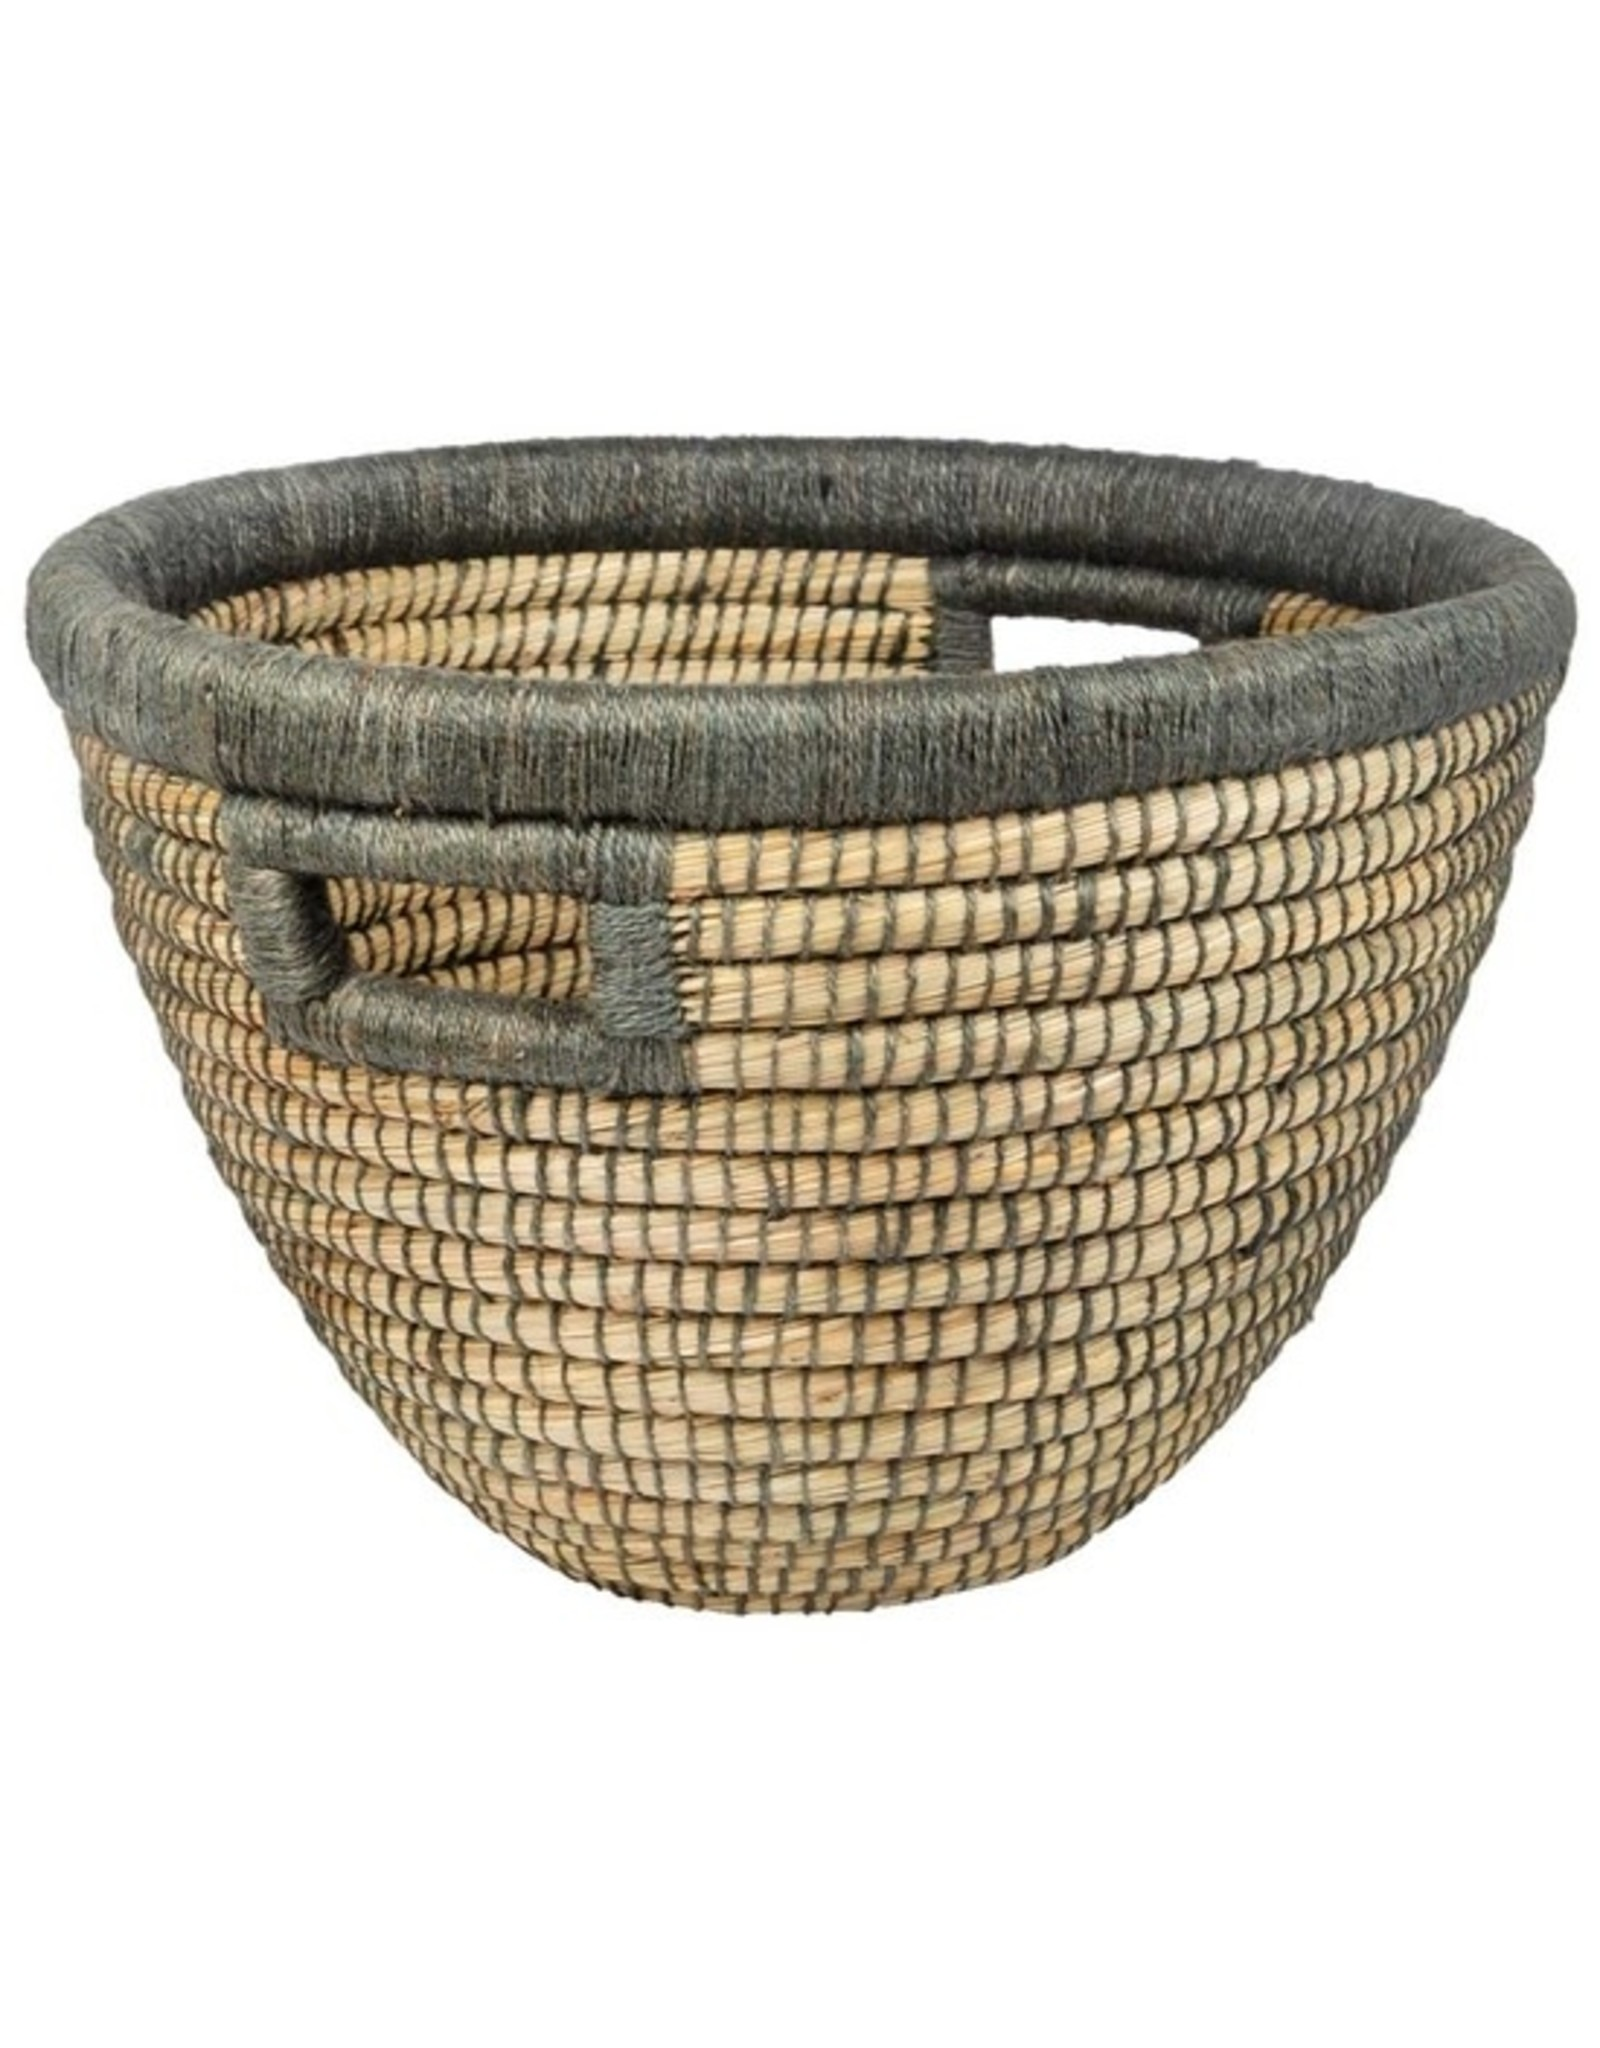 TTV USA Clear Sky Handled Basket, Bangladesh